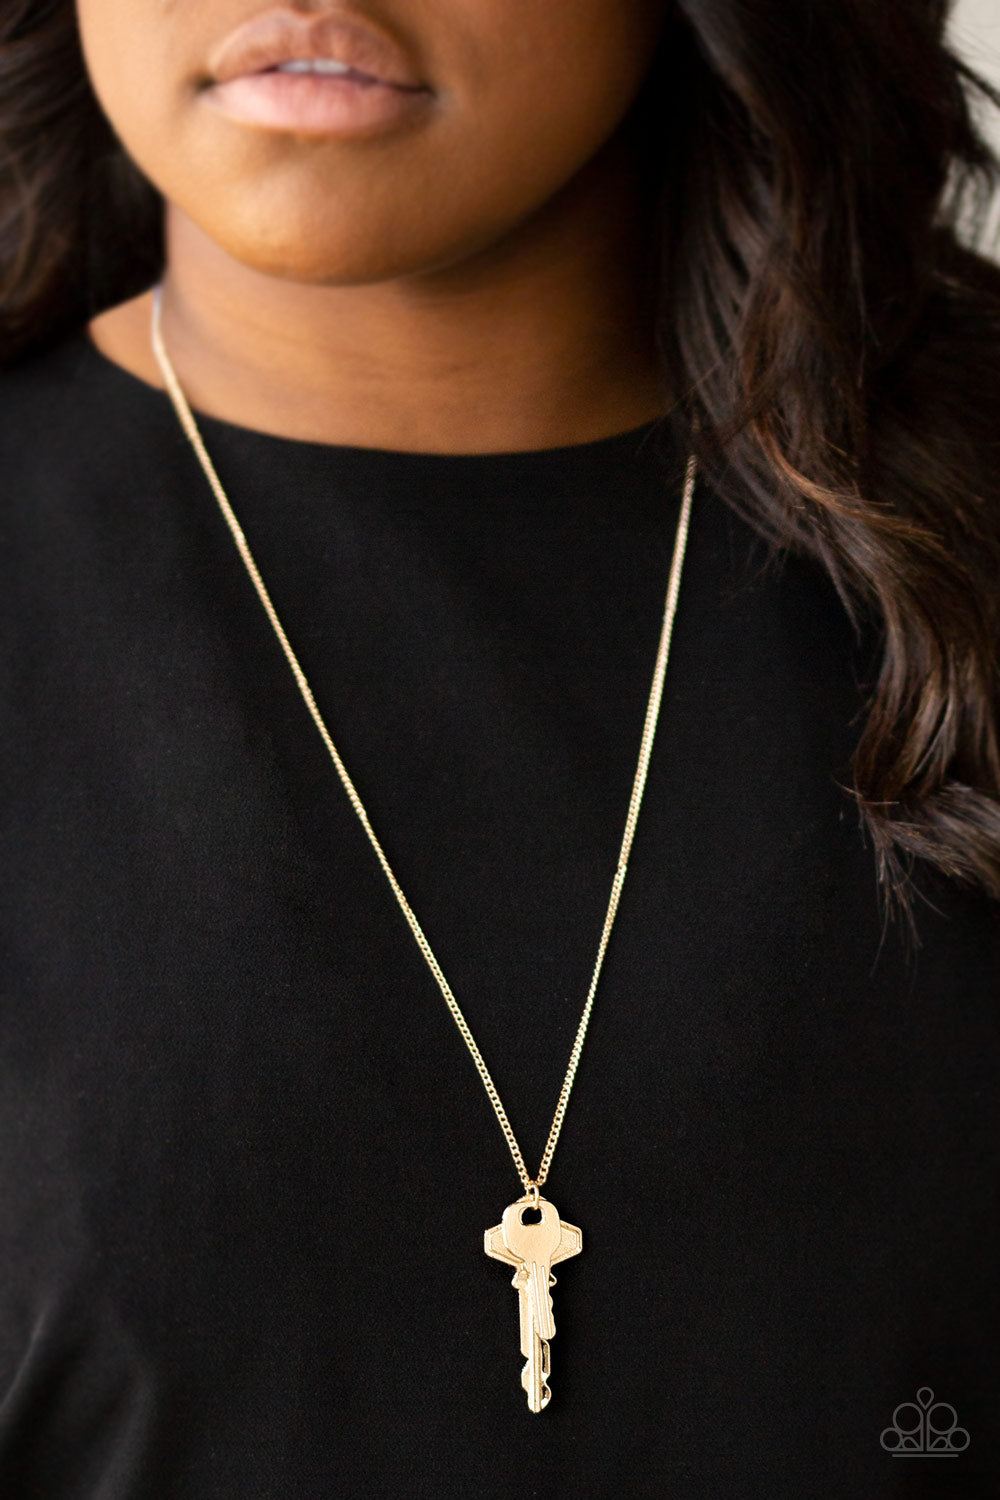 Paparazzi Necklace - The Keynoter - Gold